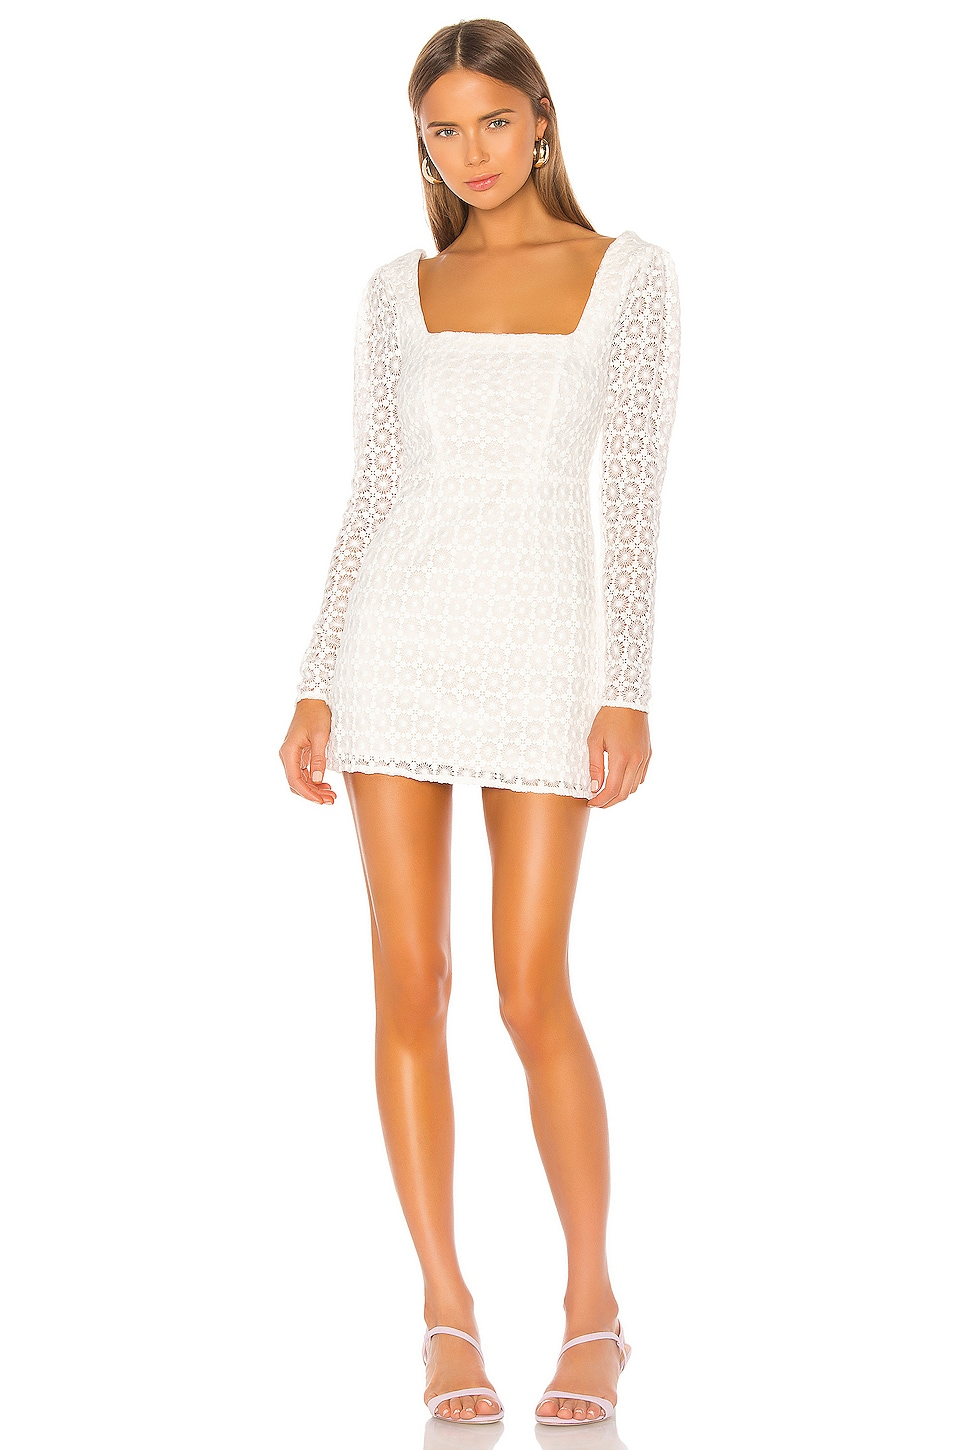 Camila Coelho Trista Mini Dress in Ivory